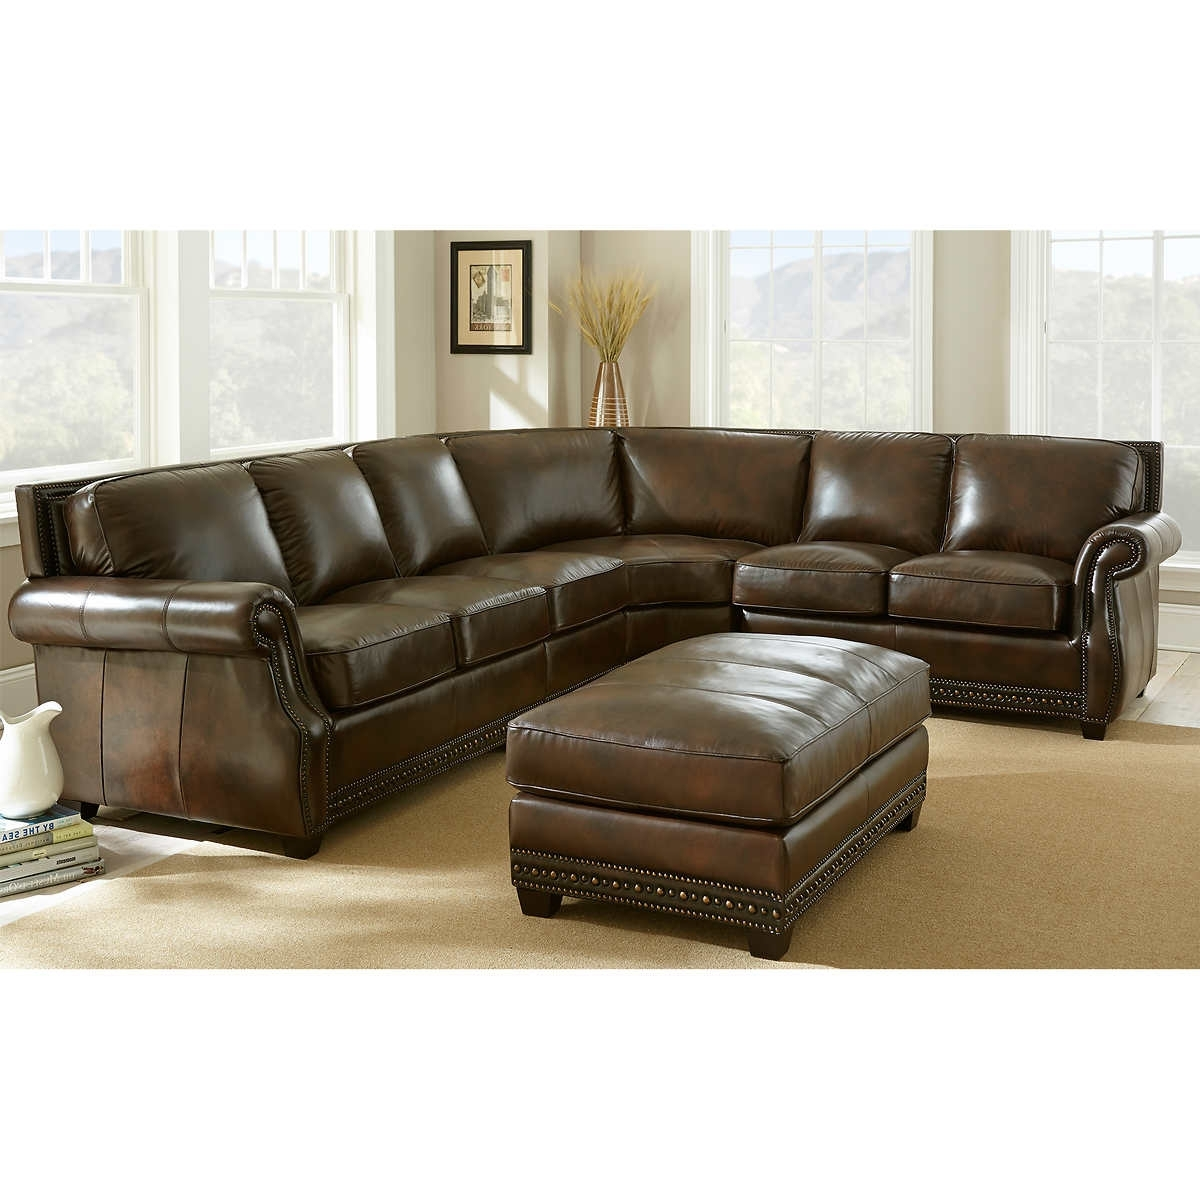 fancy sectional sofas sofa chaise longue boston image gallery of with recliners leather view 7 preferred inside recliner 30 on